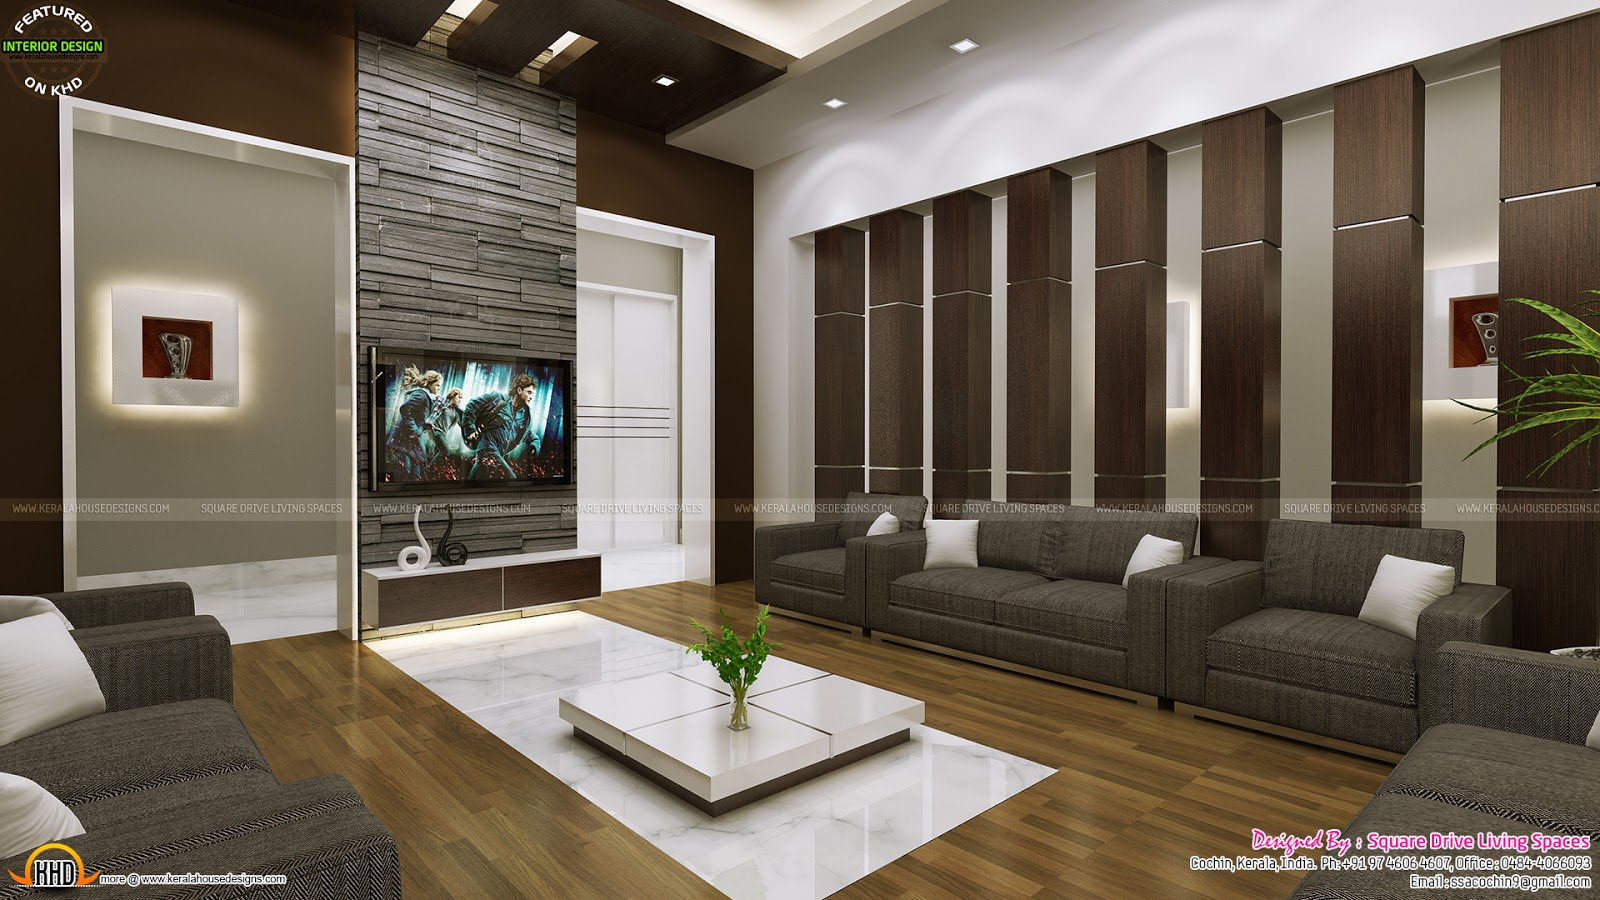 Attractive home interior ideas kerala home design and for Home design interior design